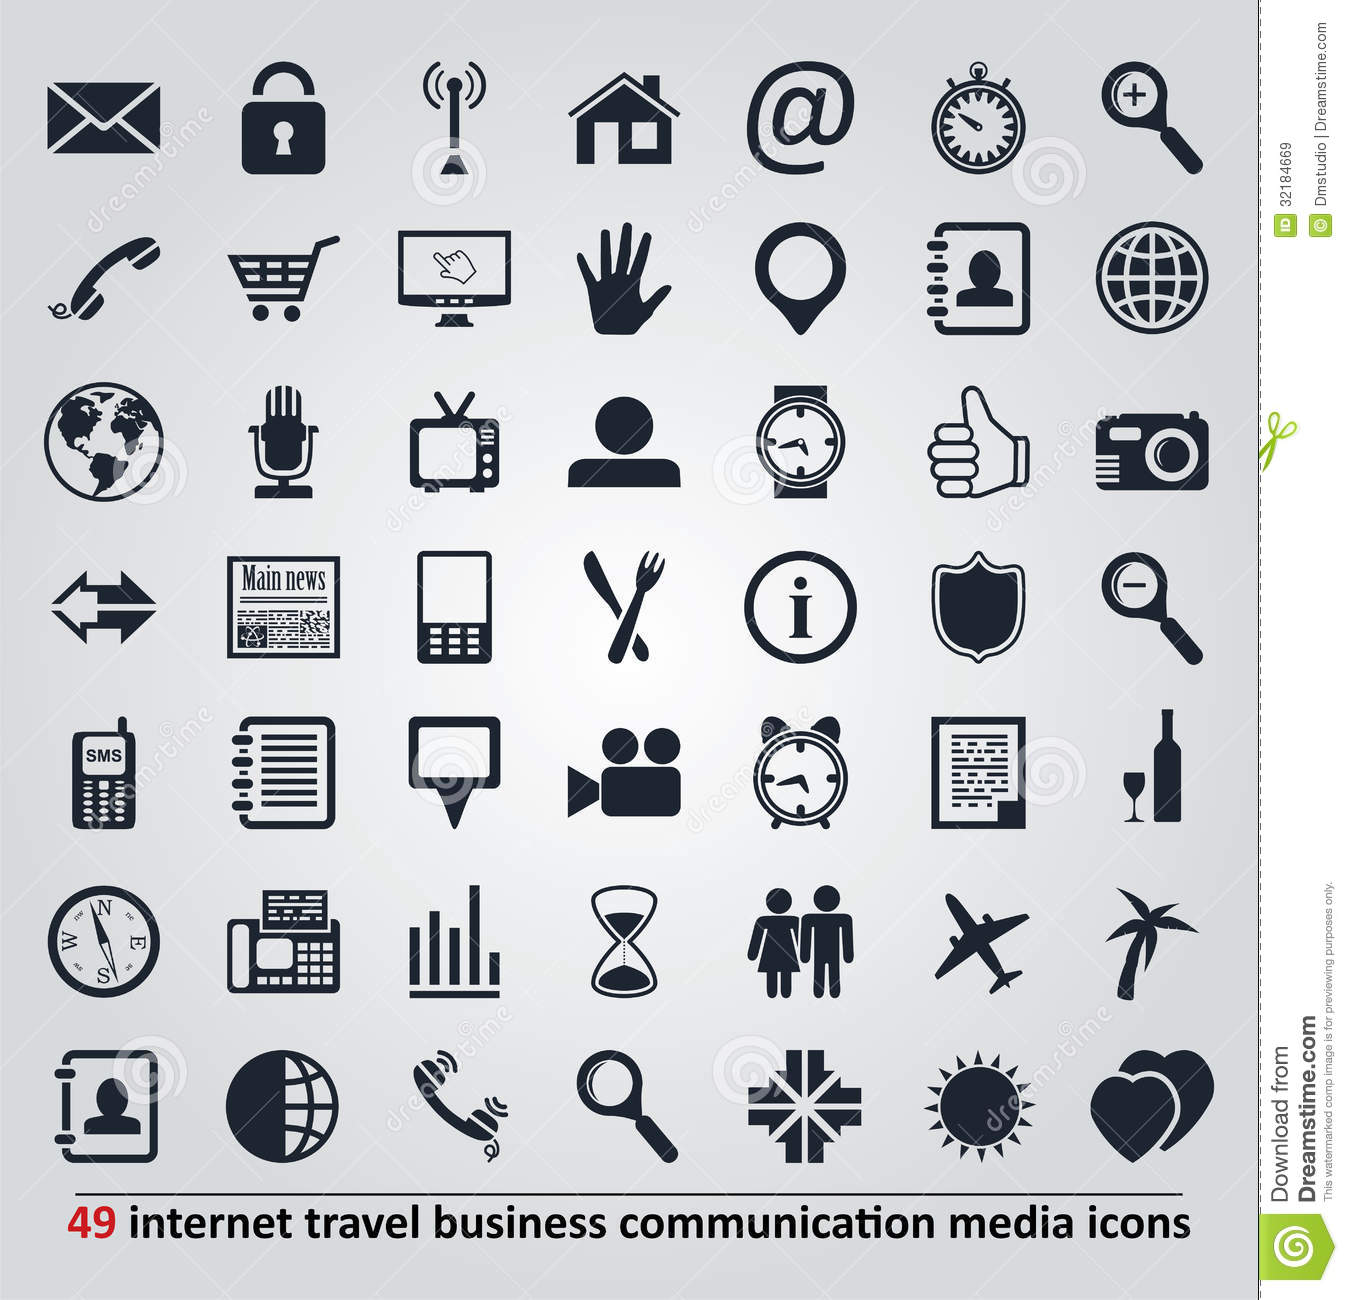 Vector icons for internet travel communication a stock image vector icons for internet travel communication a biocorpaavc